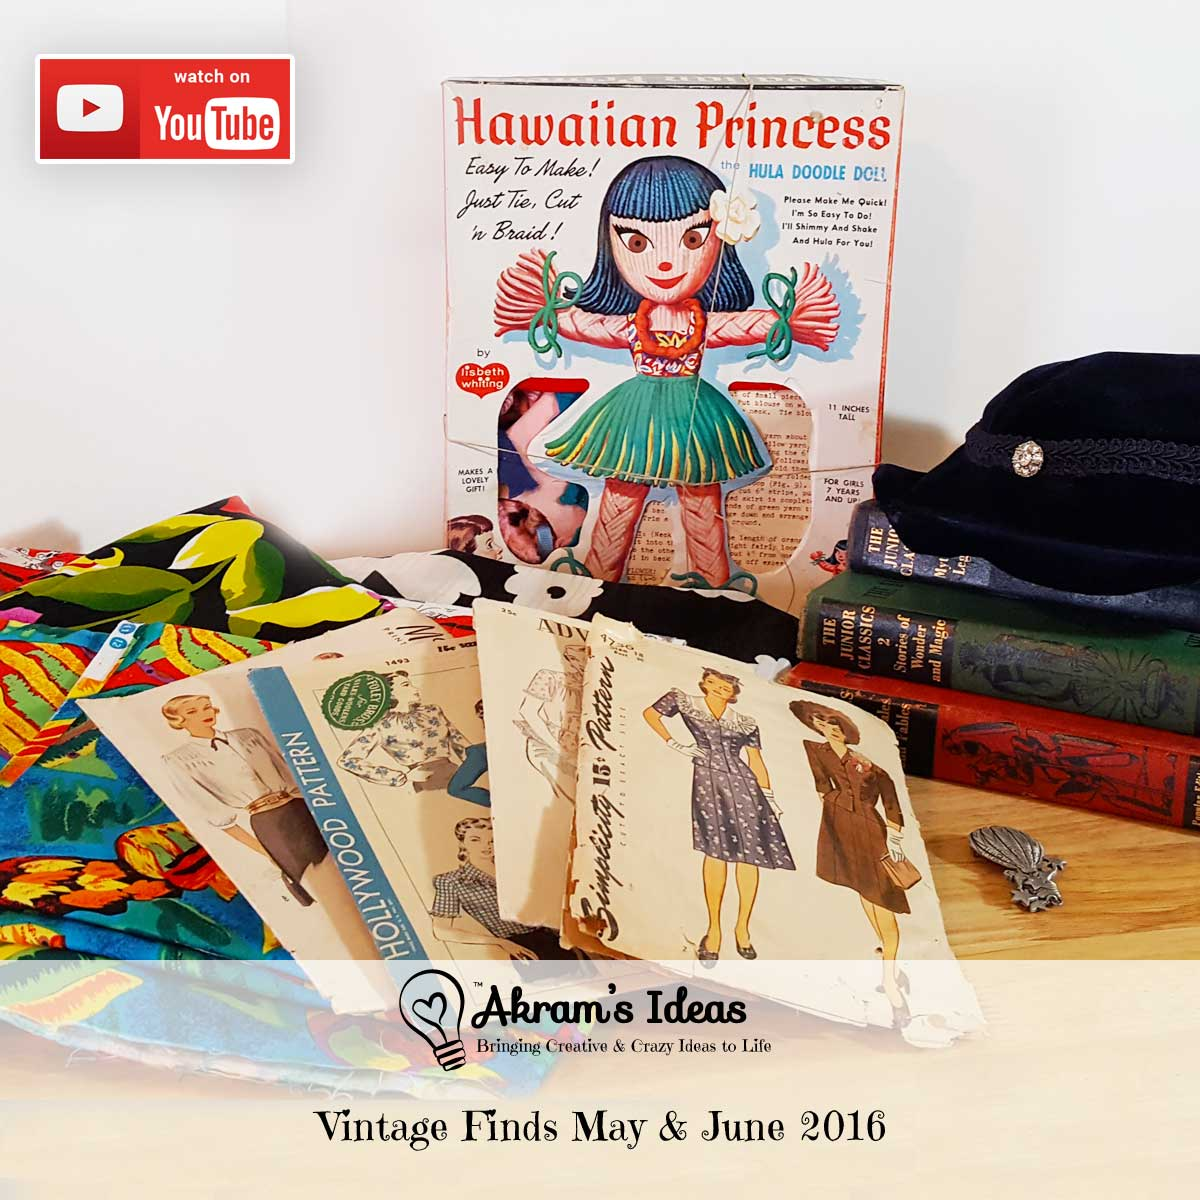 A video review of my latest vintage finds (haul) for May & June 2016.